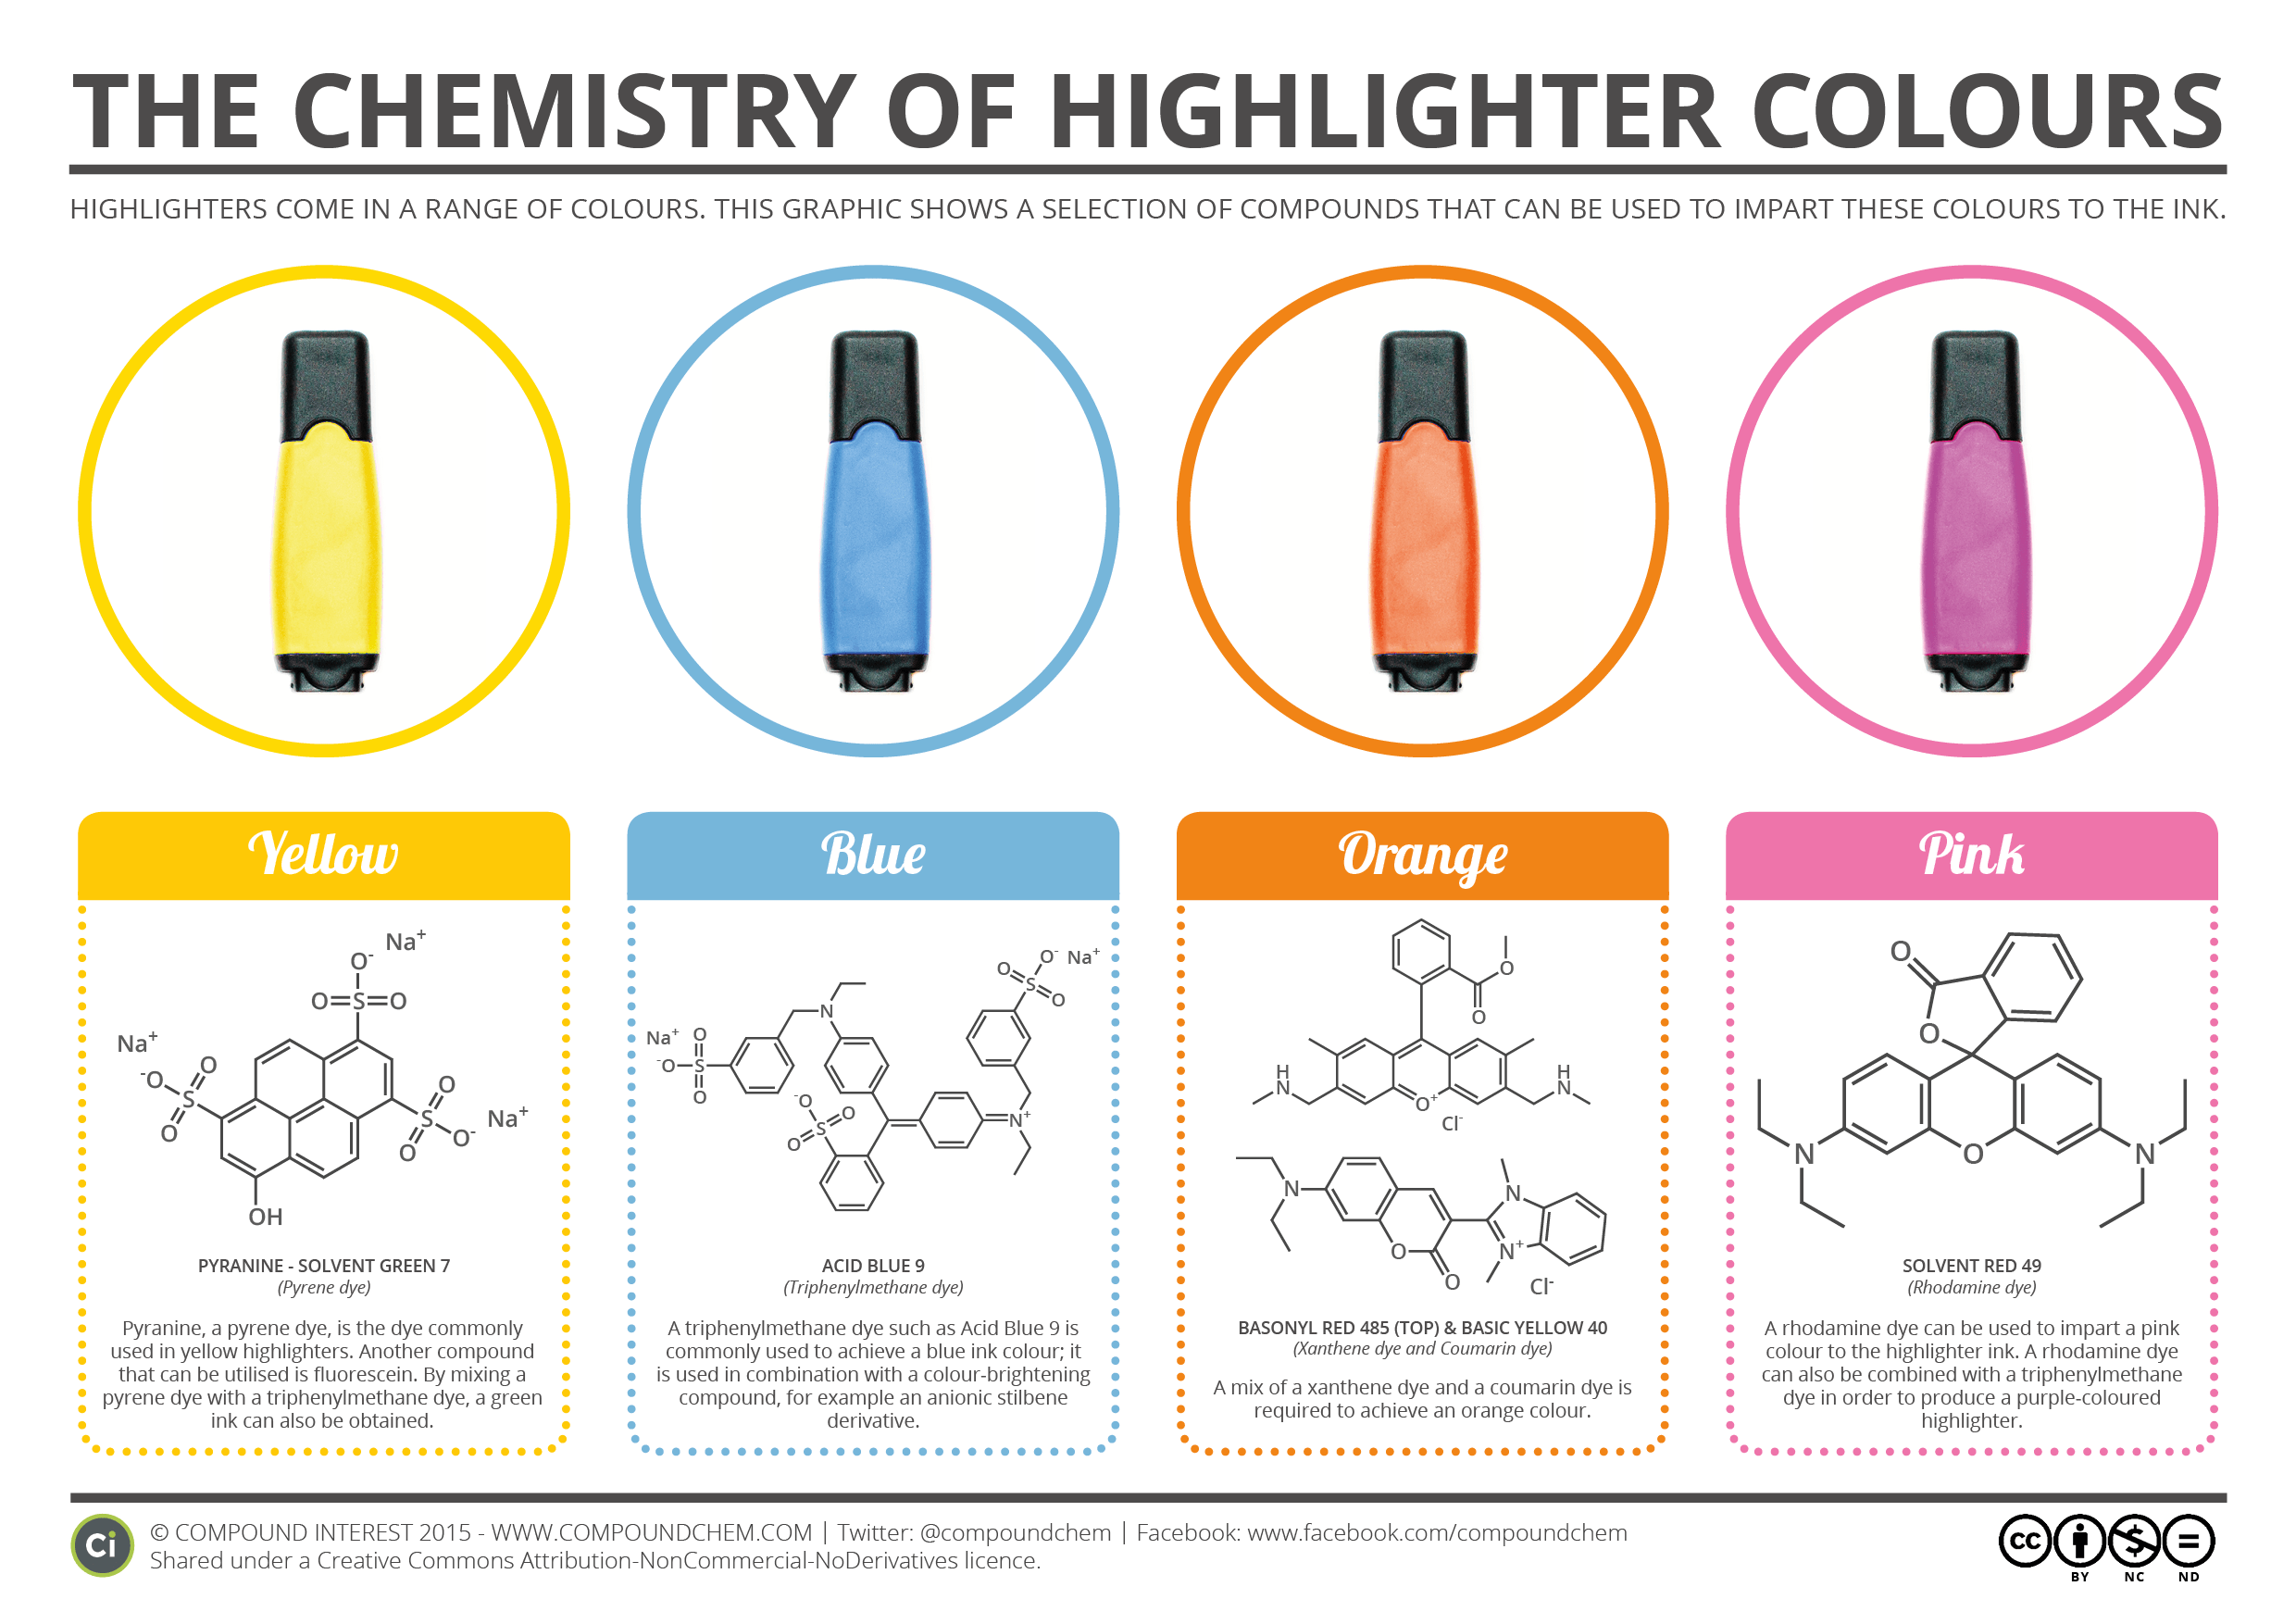 Compound Interest The Chemistry Of Highlighter Colours